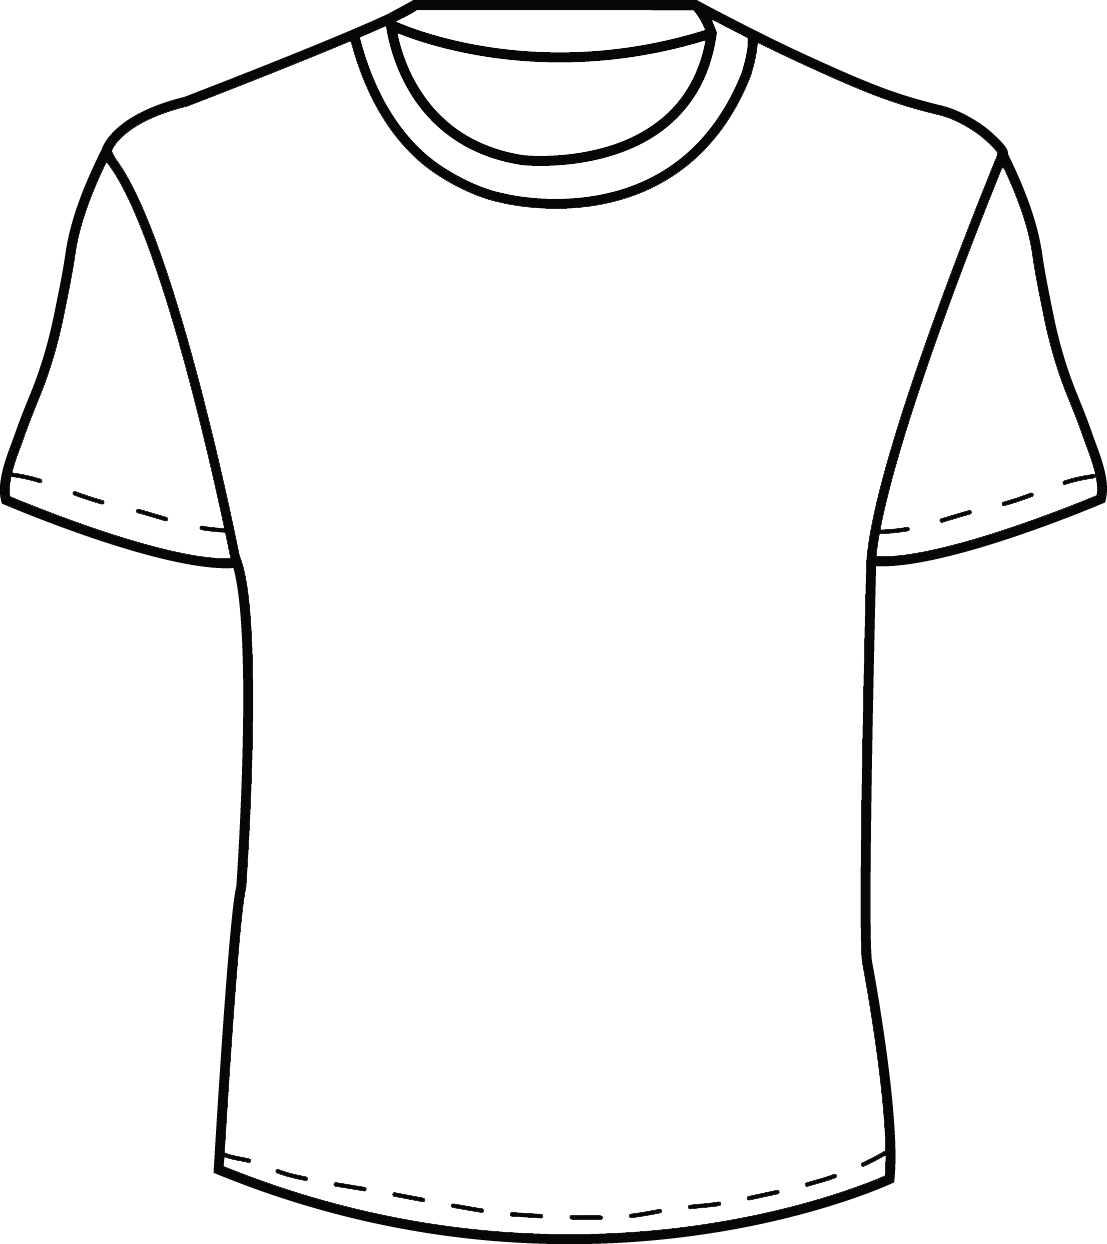 White Polo T Shirt Template